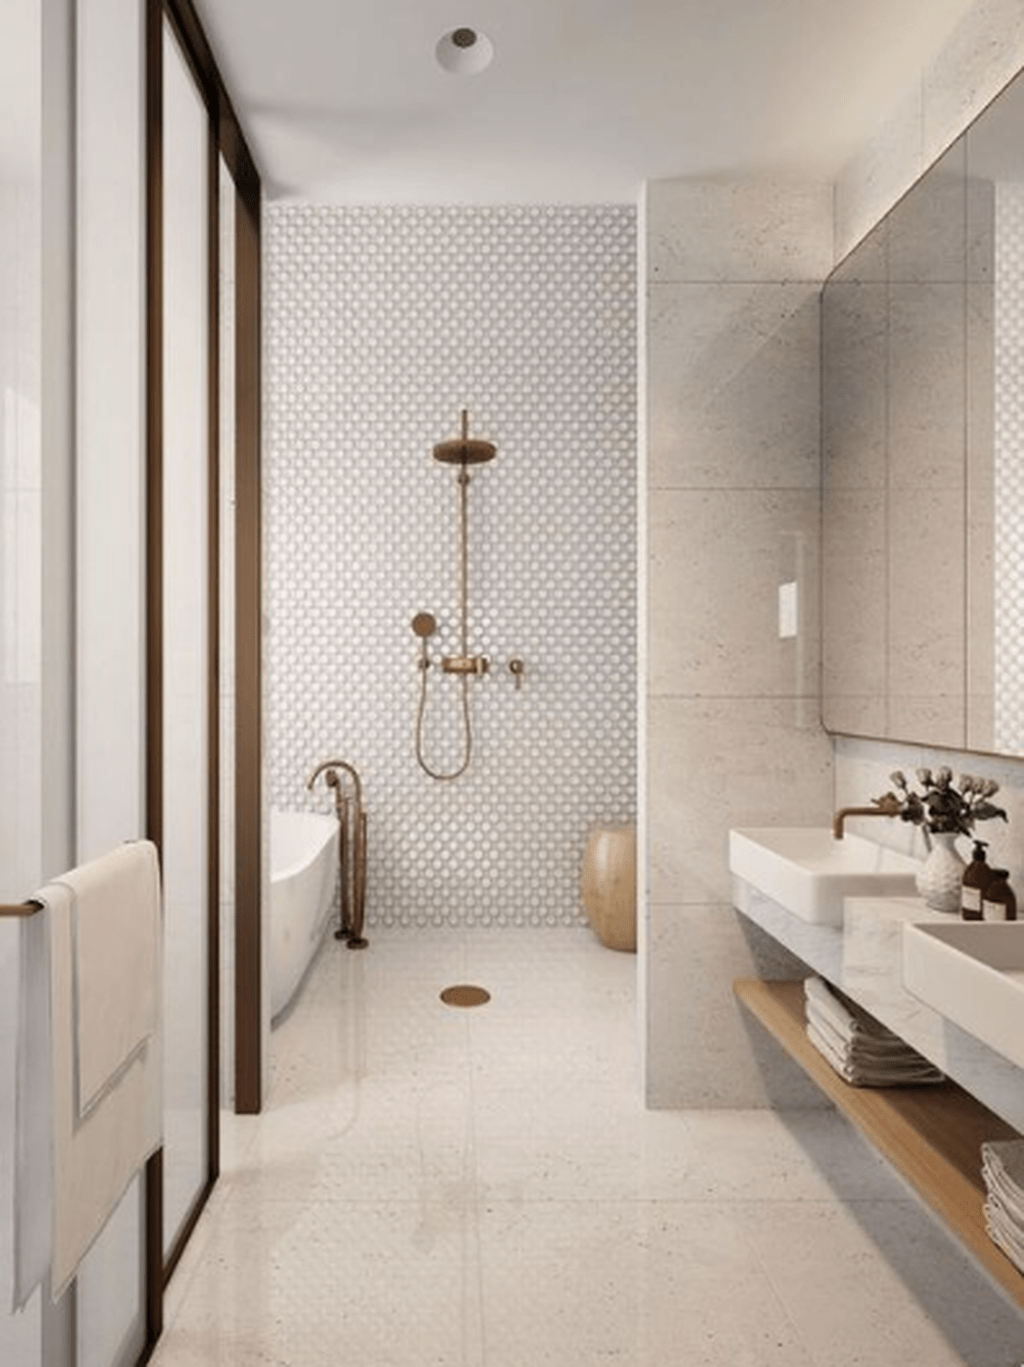 Inspiring Bathroom Interior Design Ideas 23